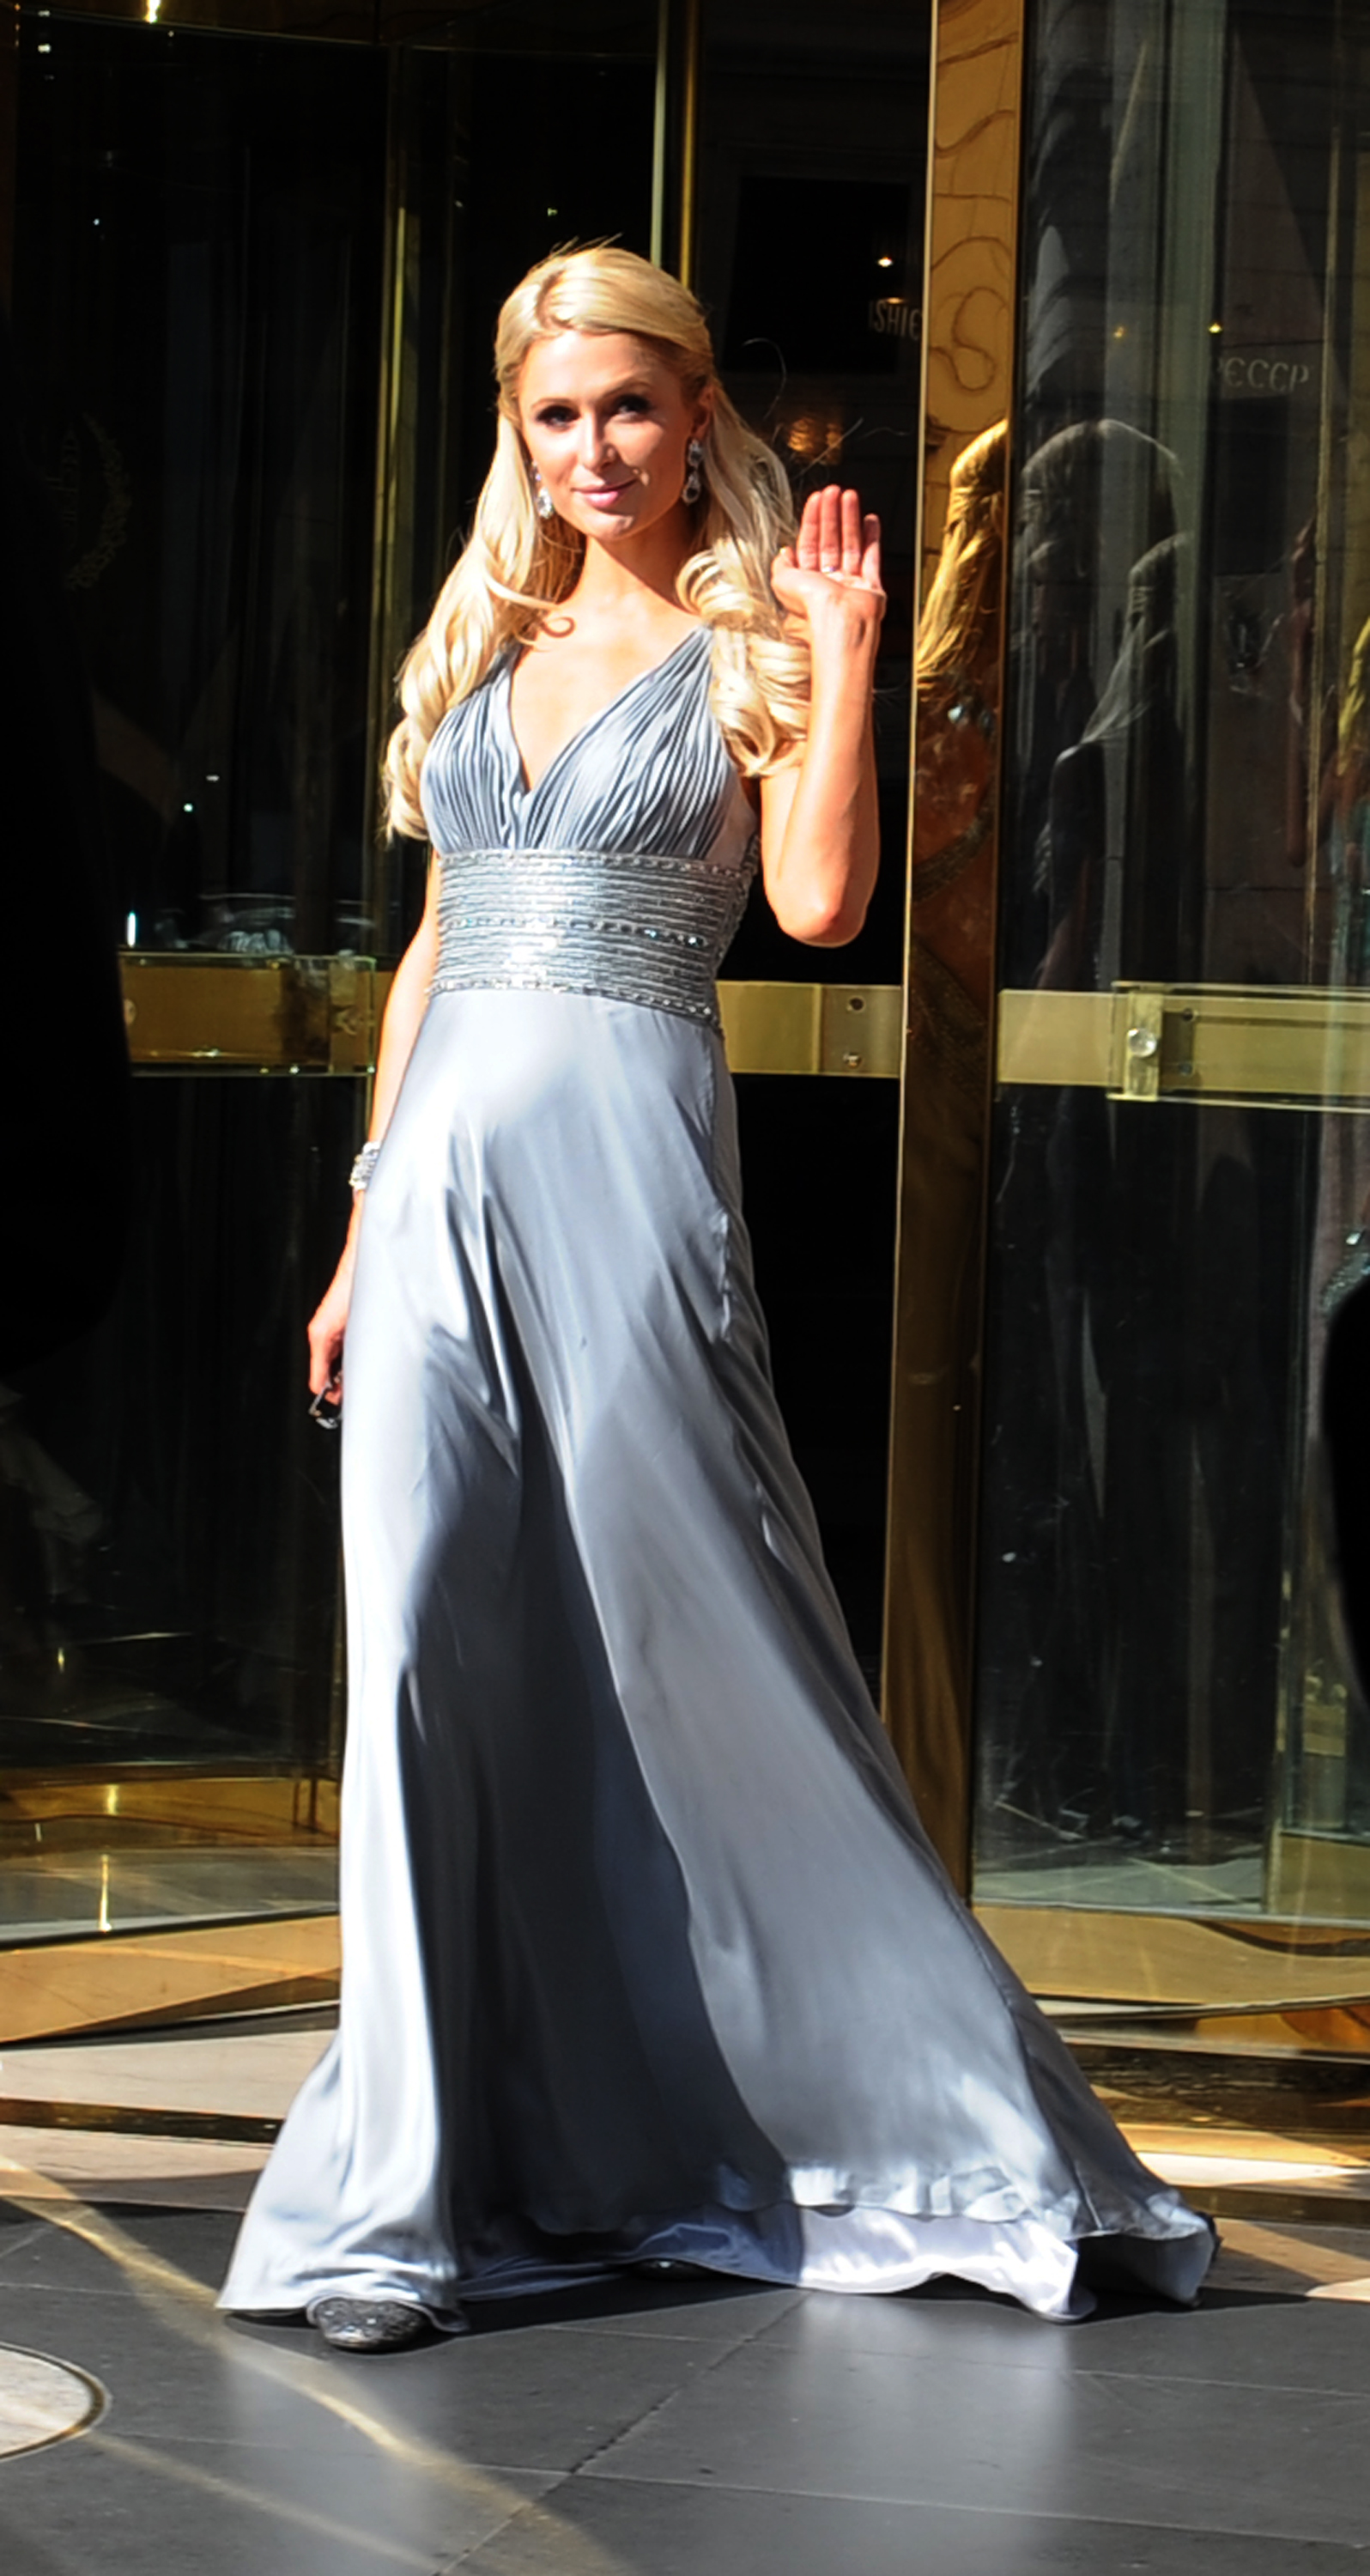 Paris Hilton leaves a hotel in central Rome to attend the wedding ceremony of Petra ecclestone, daughter of F1 chief Bernie Ecclestone, to wed James Stunt in the Odescalschi Castle in Bracciano near Rome on August 27, 2011. AFP PHOTO / Tiziana Fabi (Photo credit should read TIZIANA FABI/AFP/Getty Images)